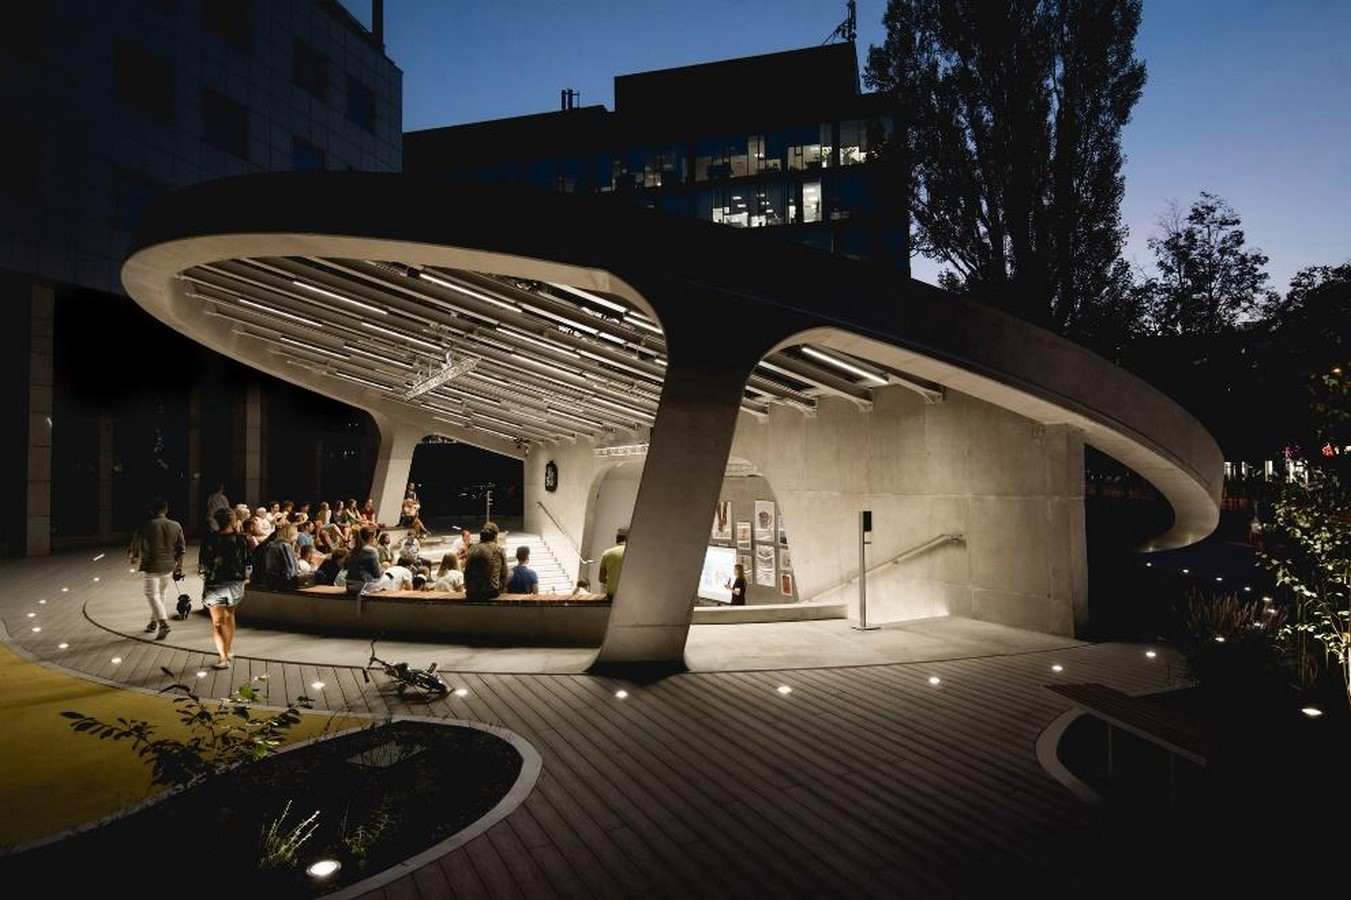 A concrete amphitheater as an 'open, democratic space' in Warsaw designed by Lina - Sheet1